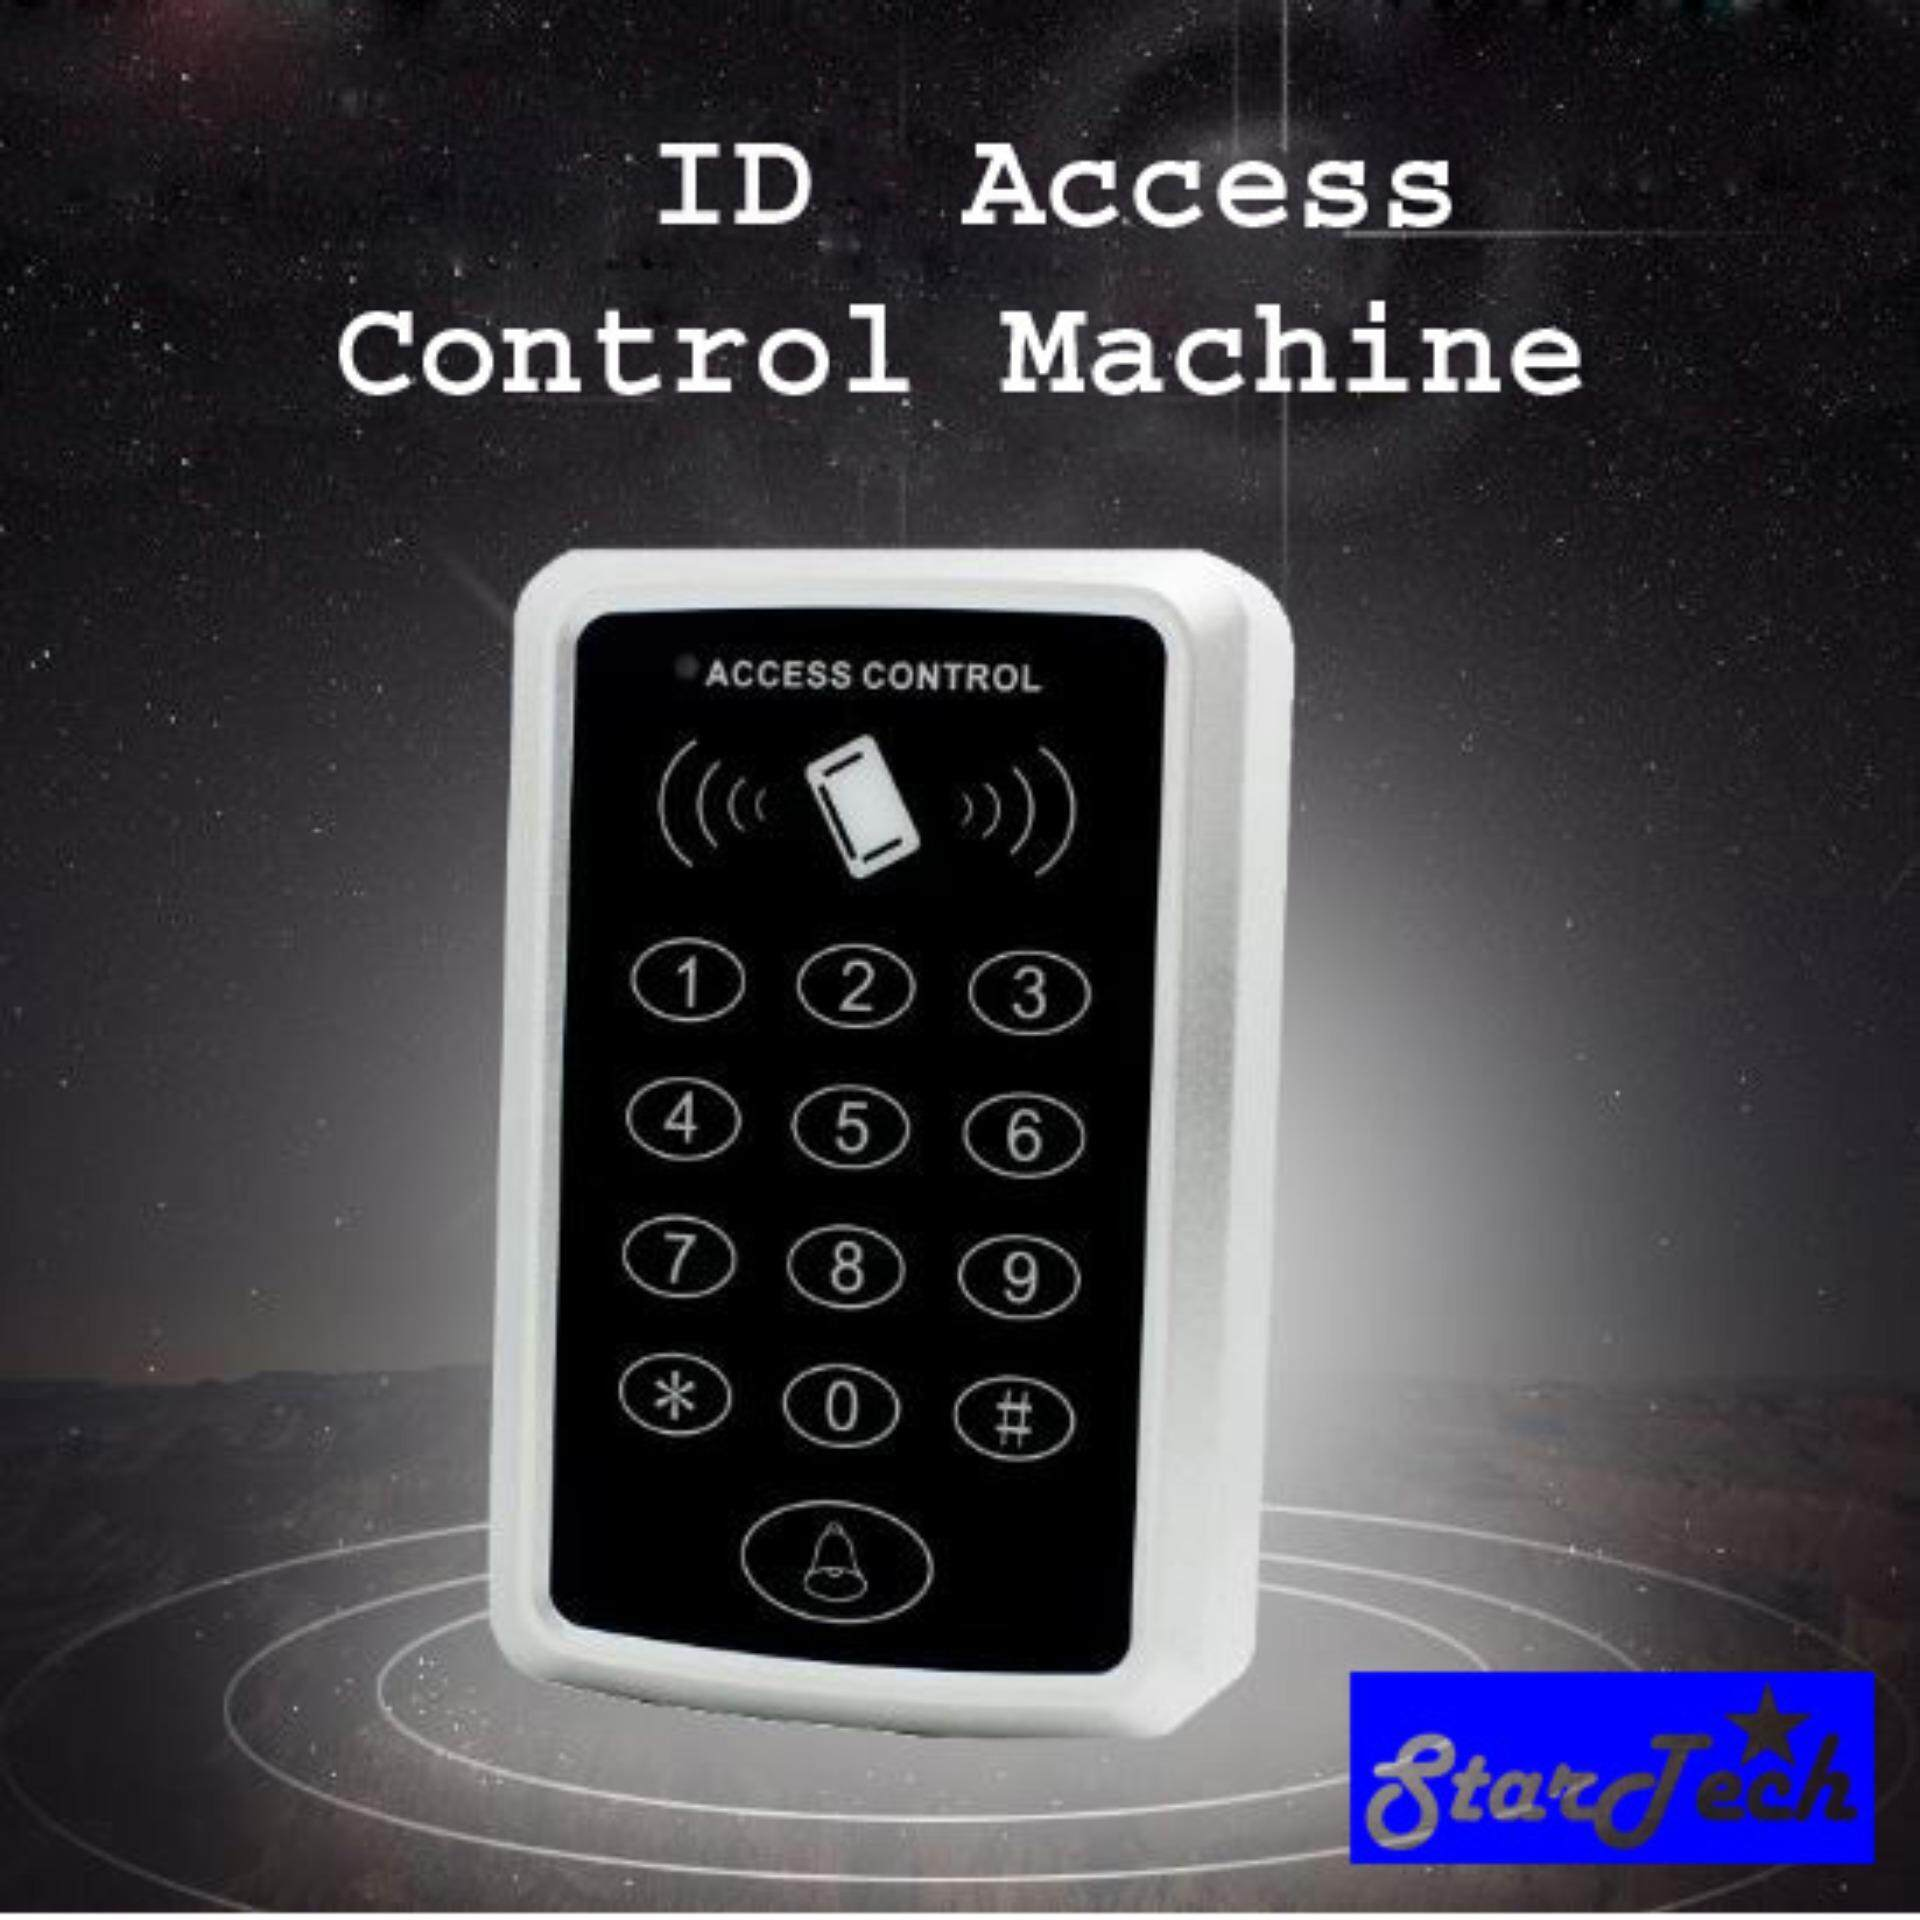 Startech Id Access Control Machine For 1000 Users.